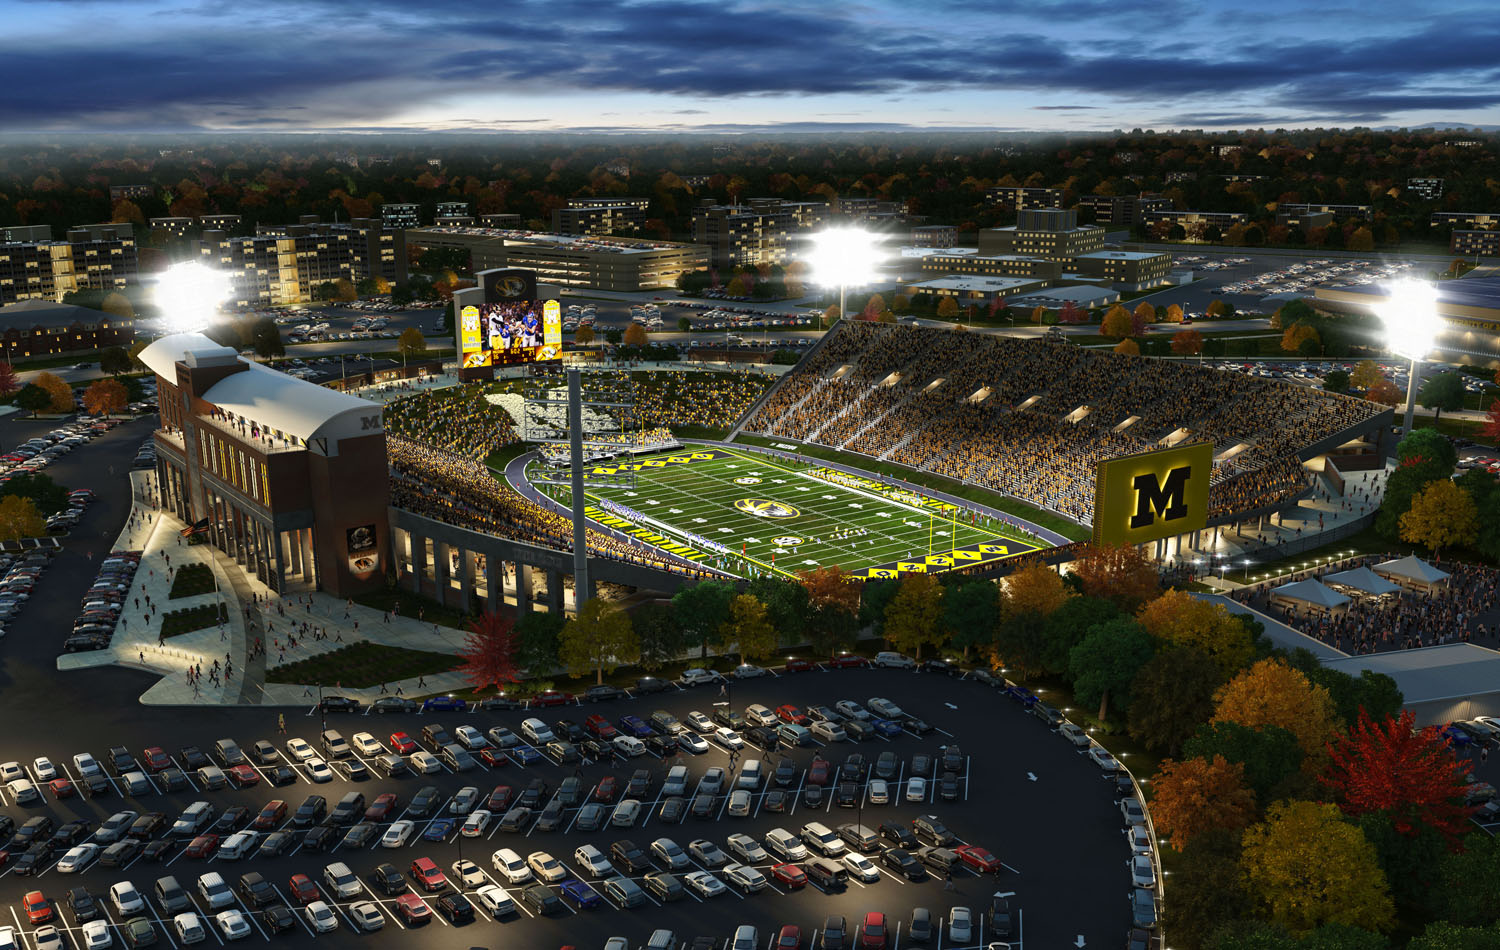 3D Stadium renderings often include the parking lot in the foreground.